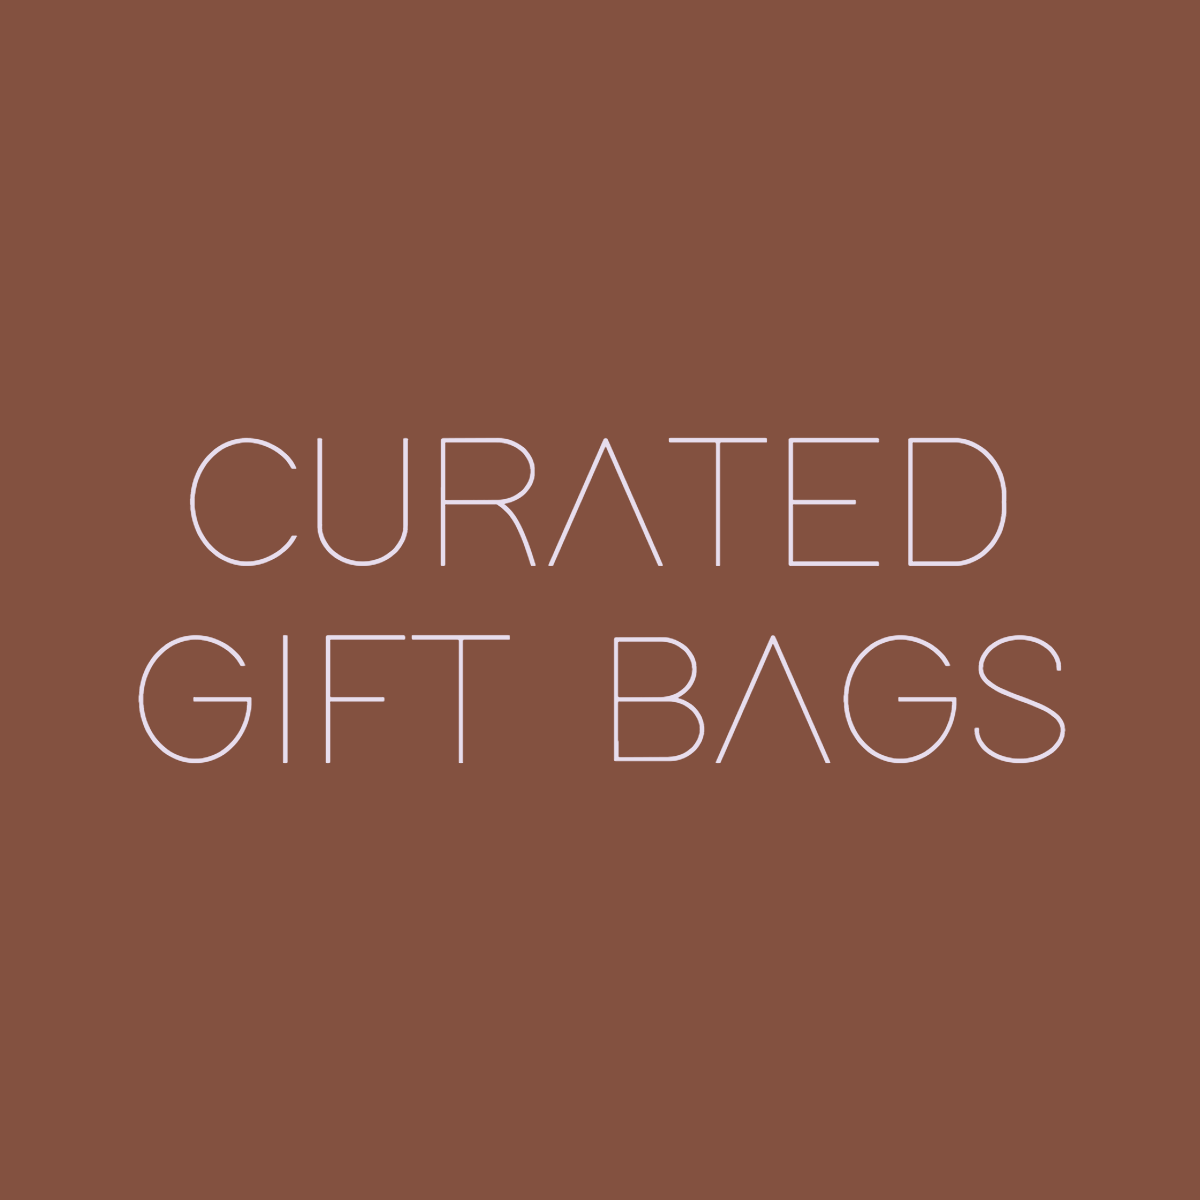 GIFT BAGS.png